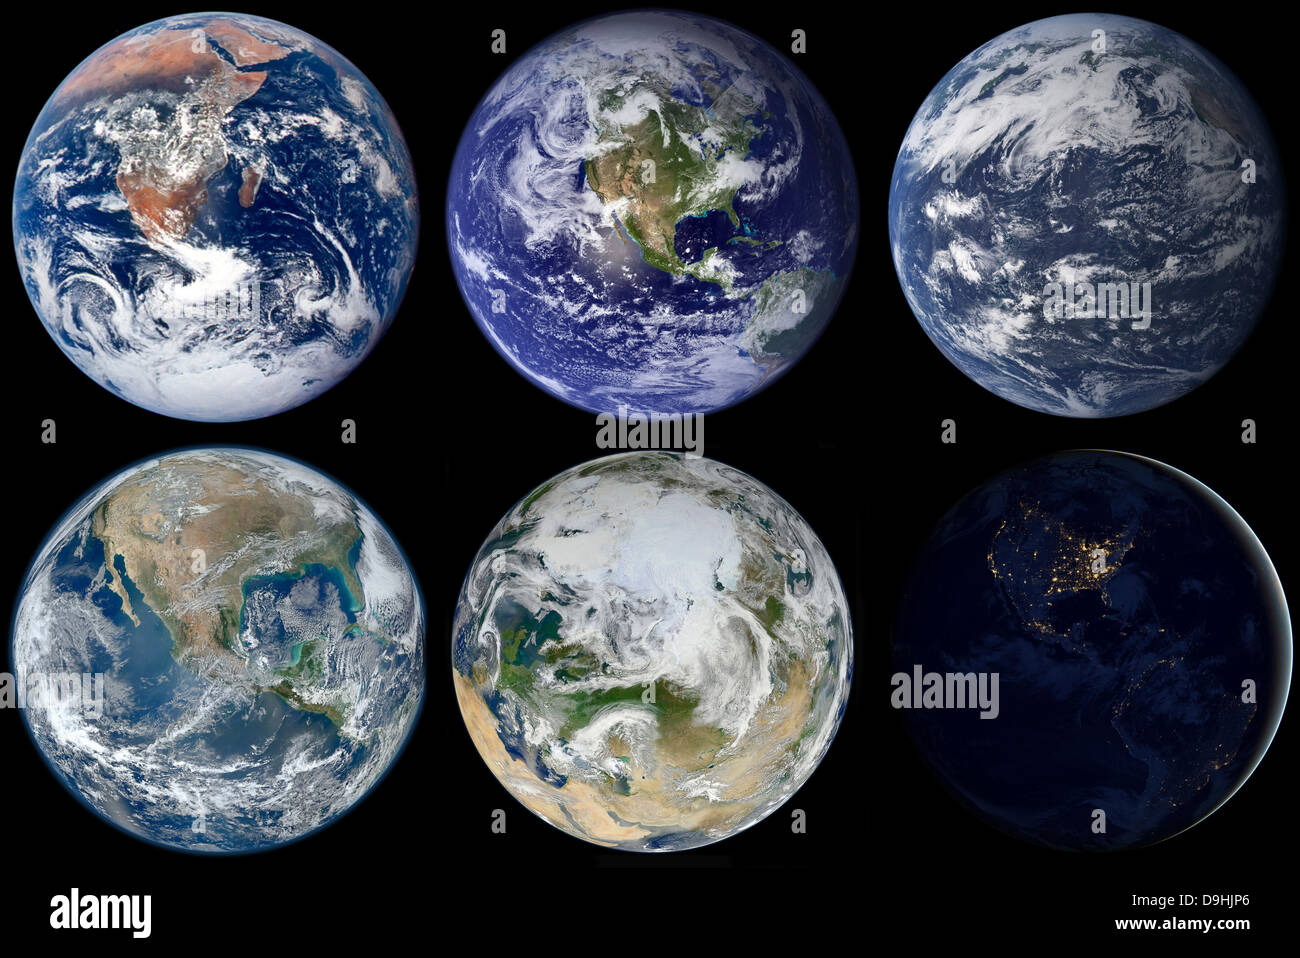 Image comparison of iconic views of planet Earth. - Stock Image